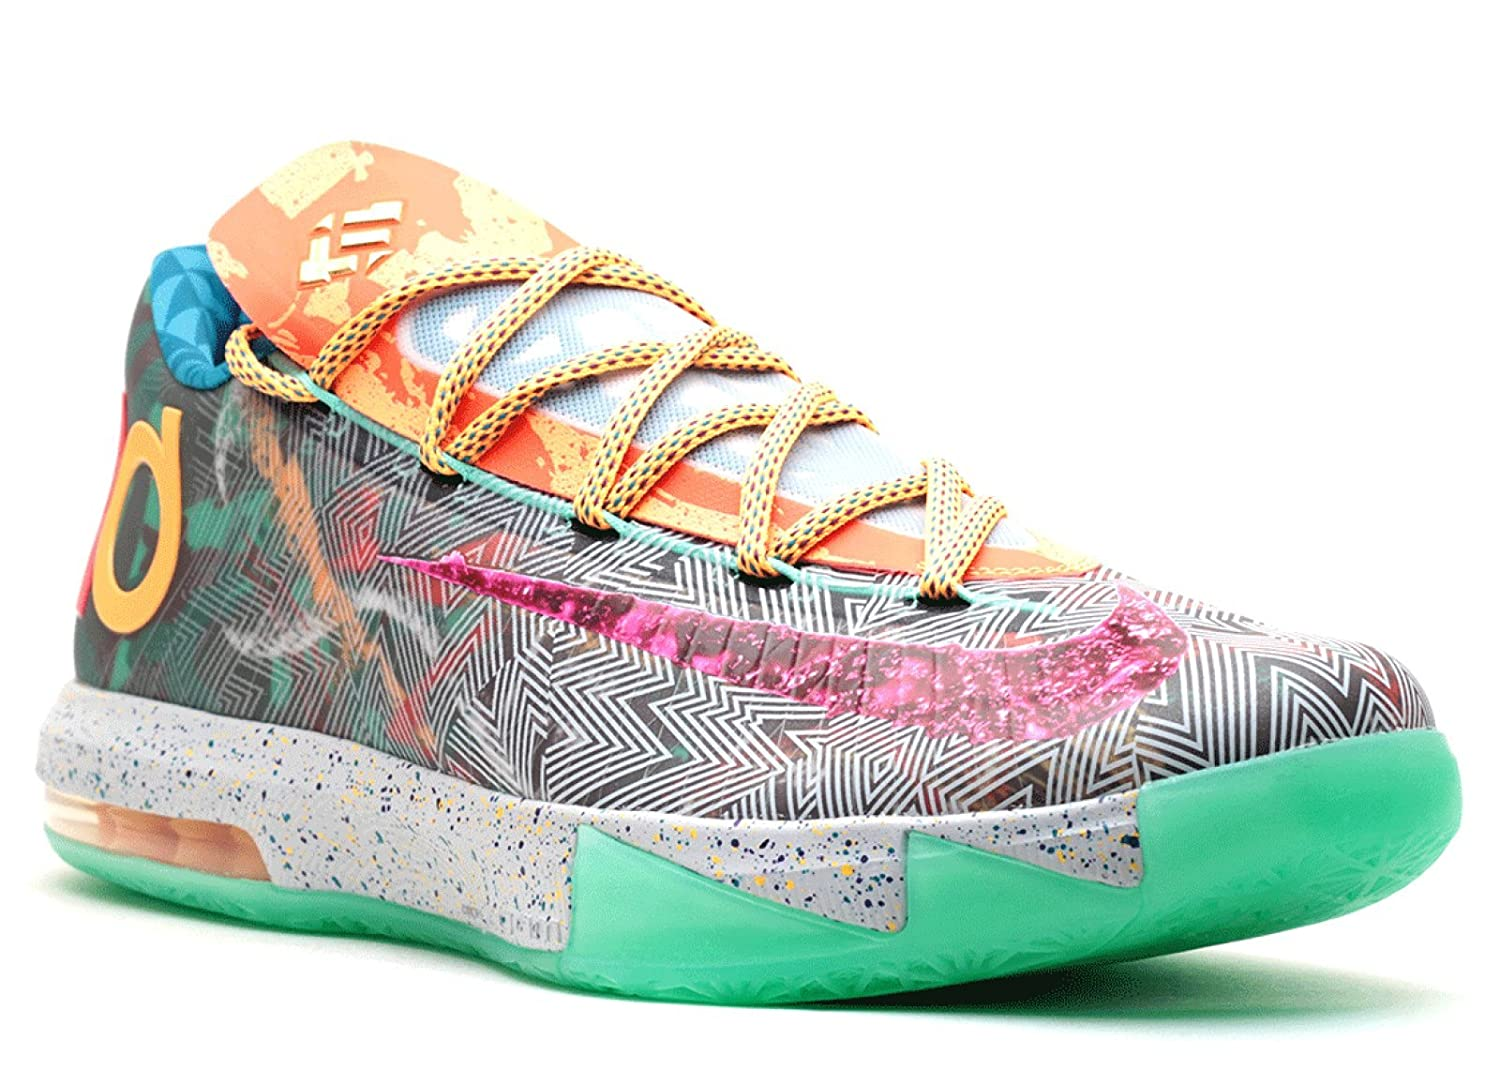 Nike Mens KD VI Premium What The KD Synthetic Basketball Shoes